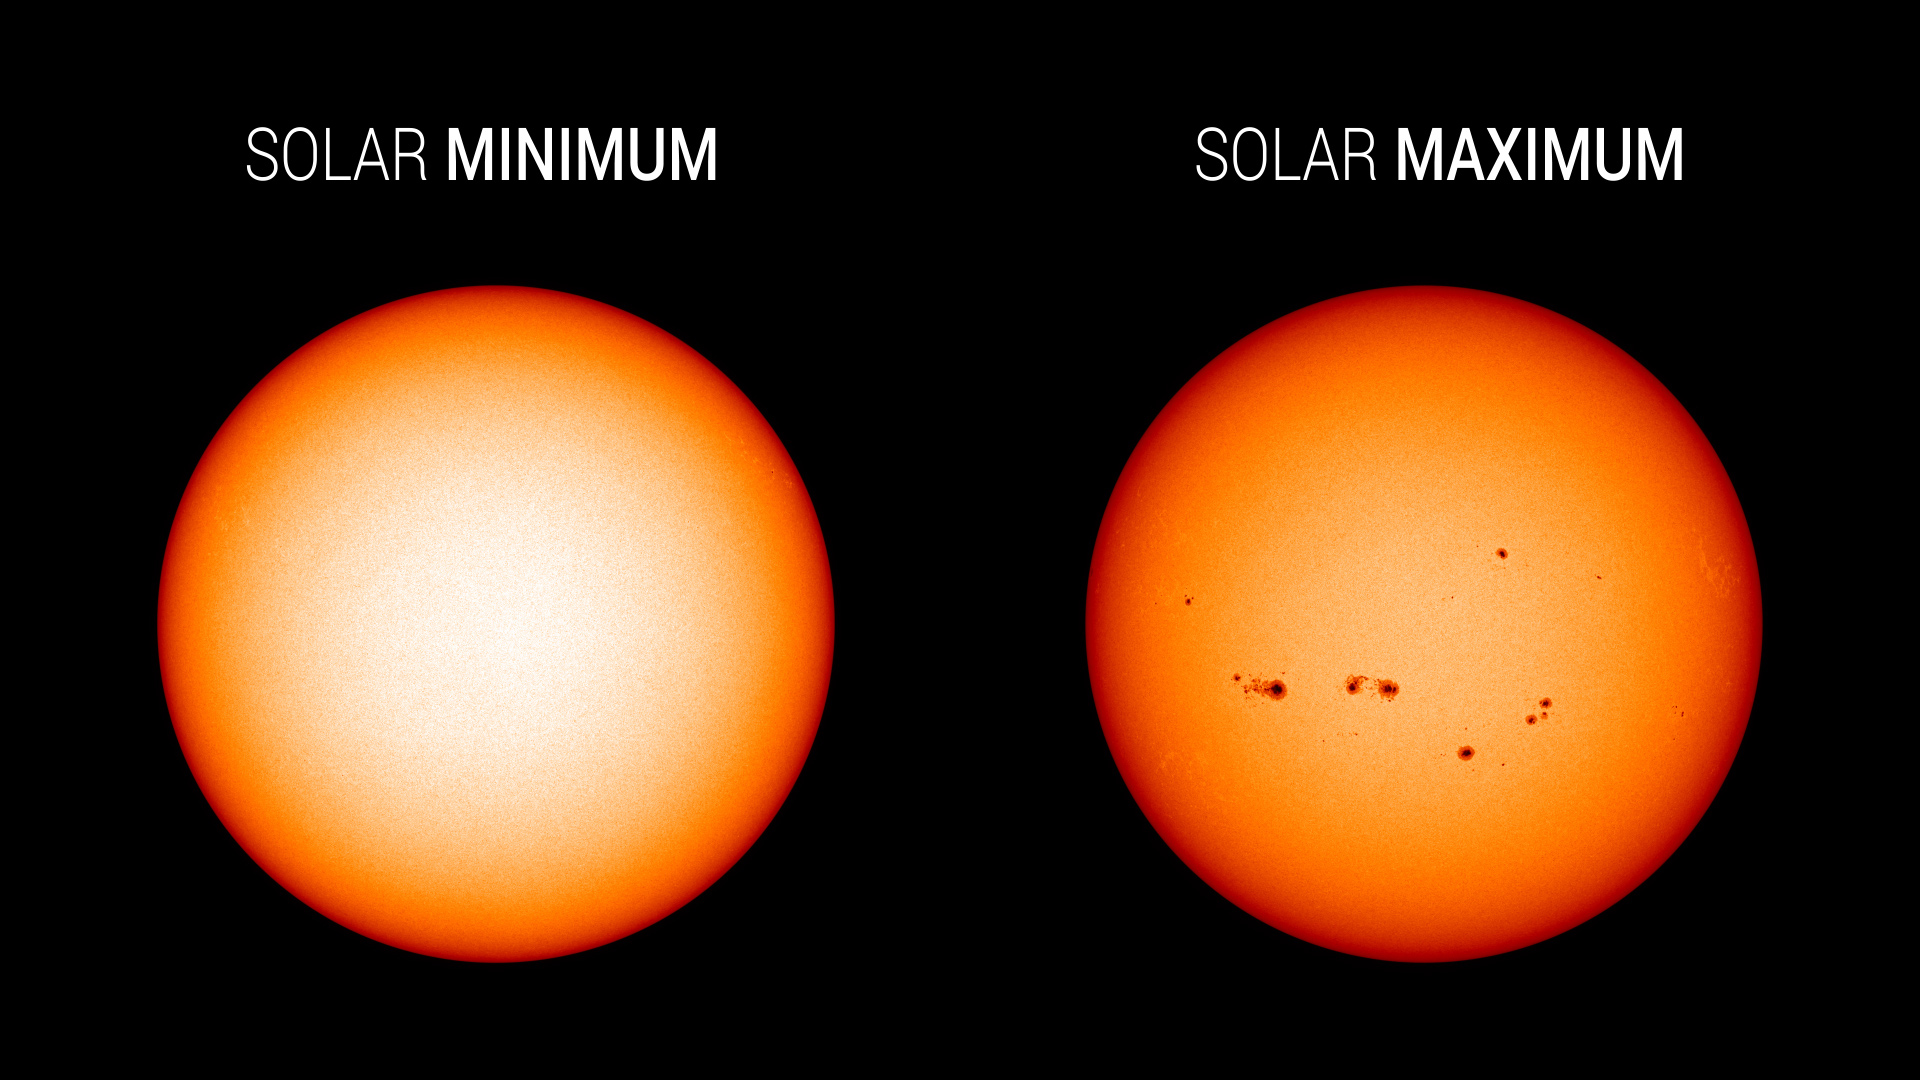 The sun has started a new solar cycle, experts say